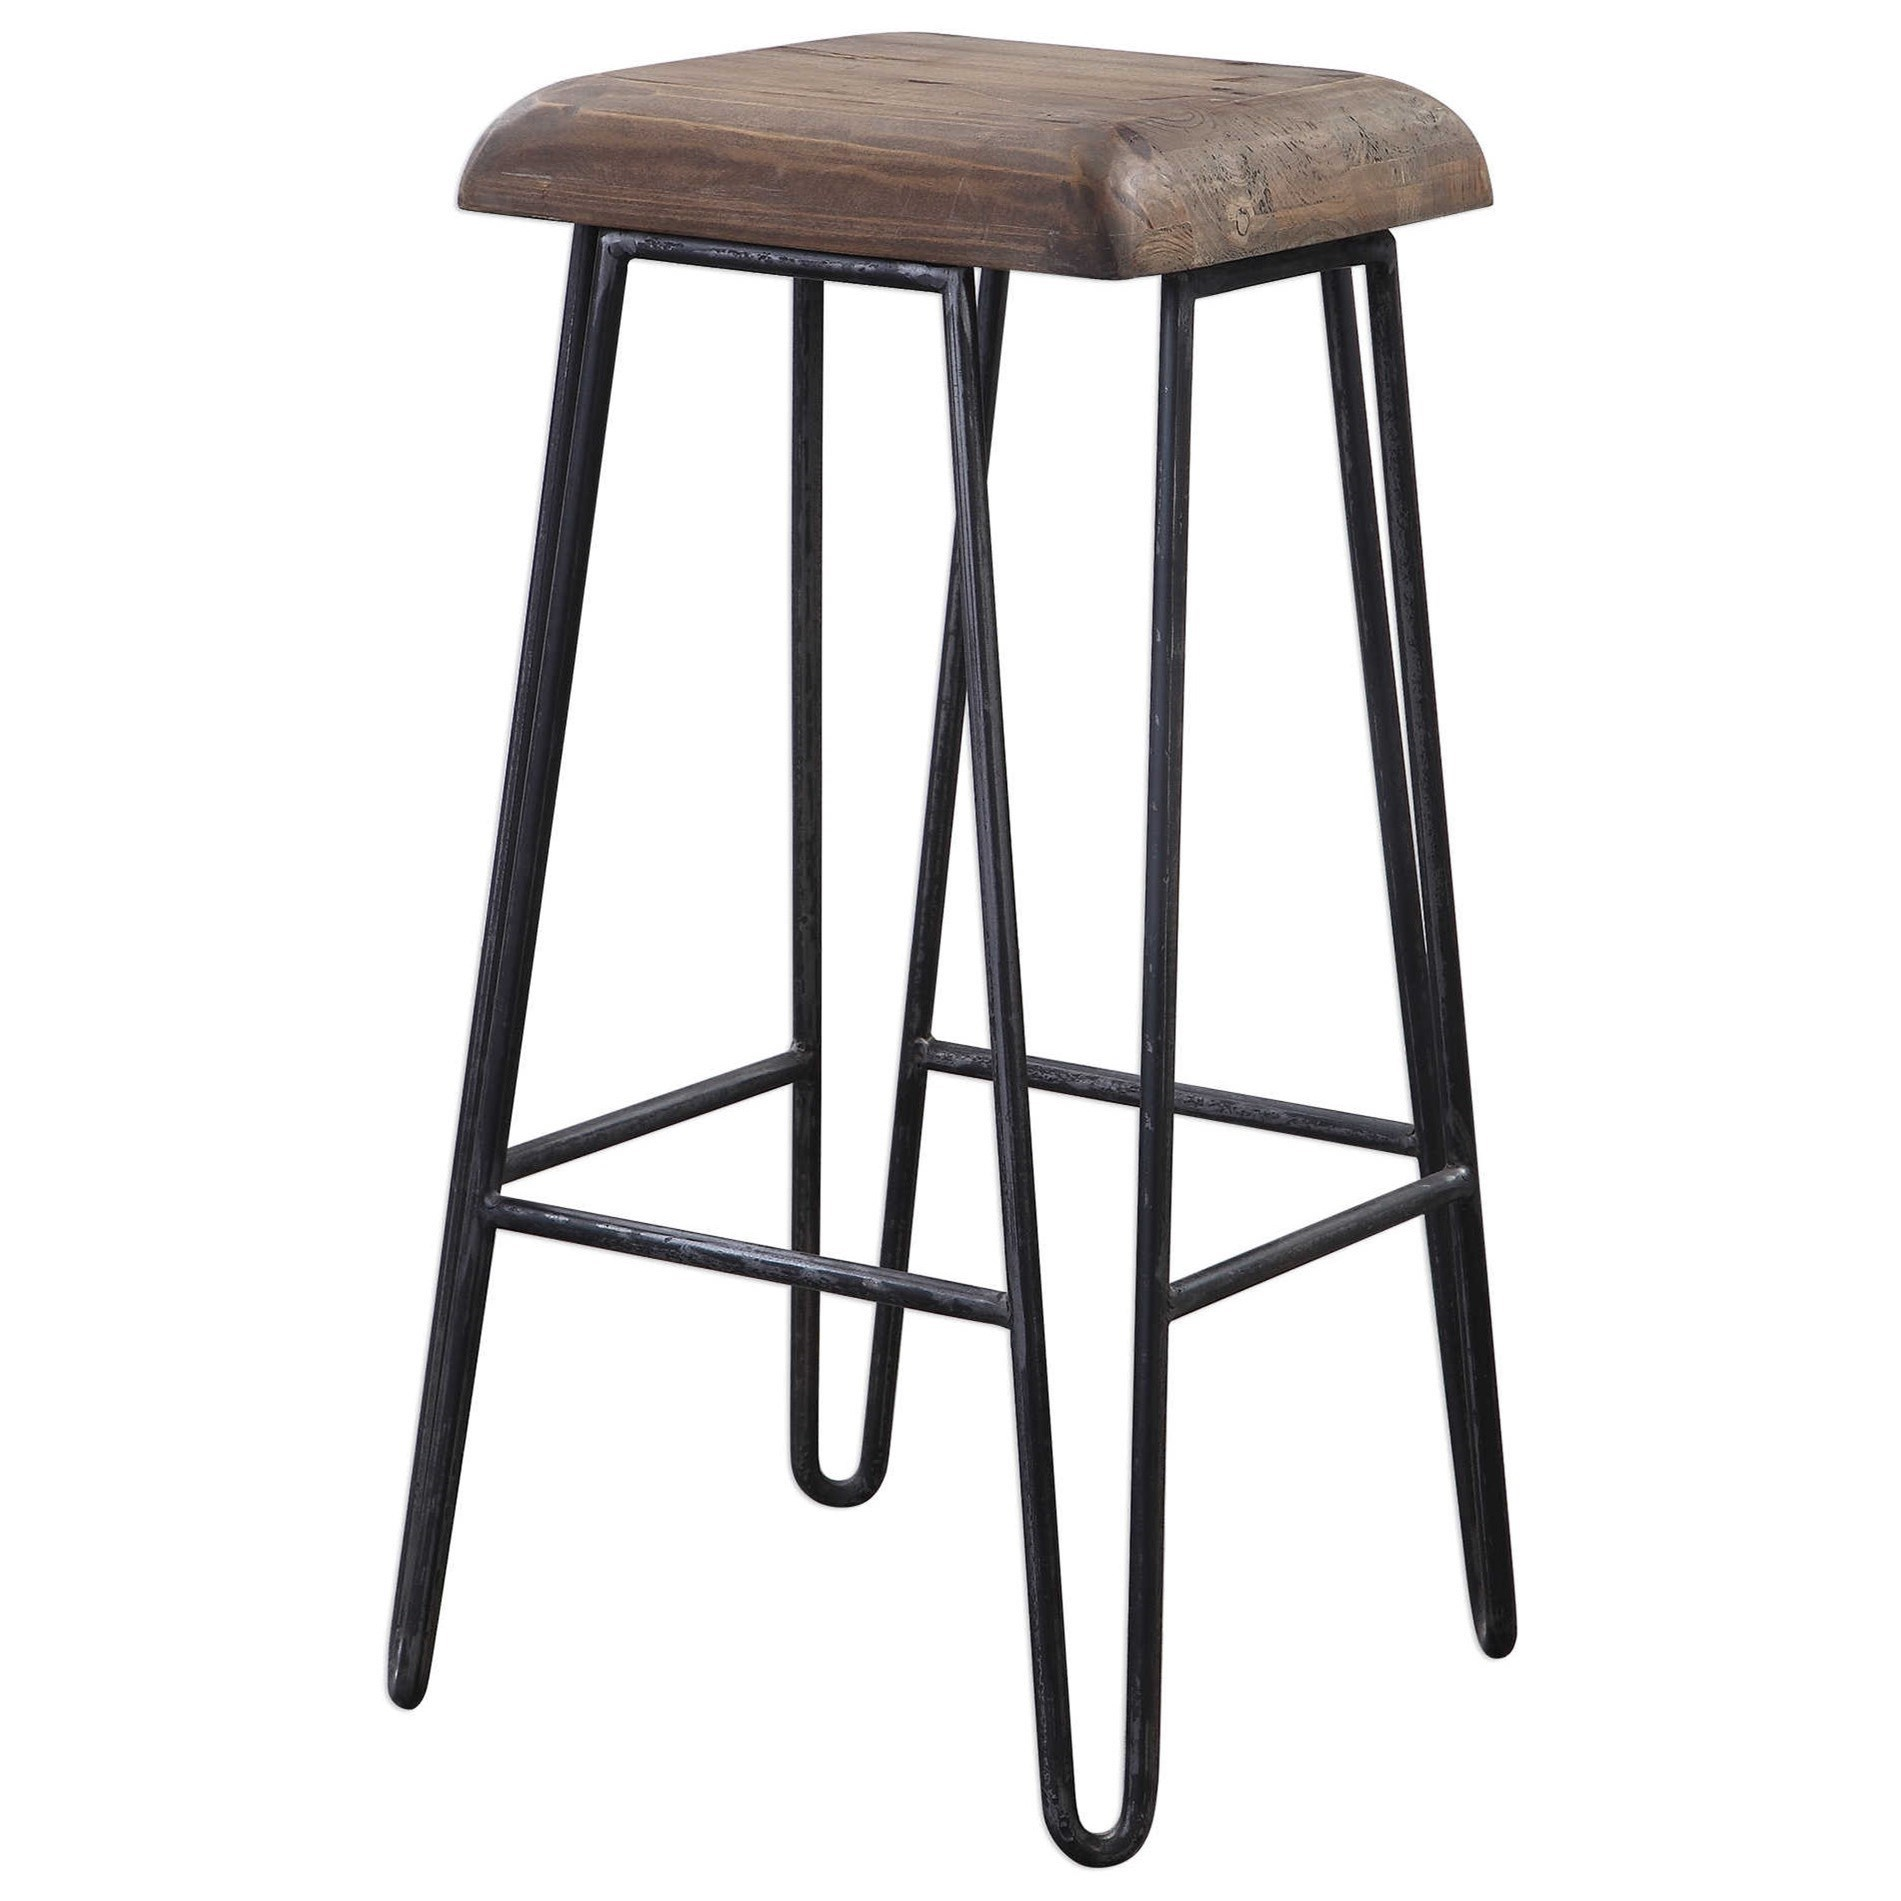 Accent Furniture - Stools Albie Industrial Bar Stool by Uttermost at Mueller Furniture